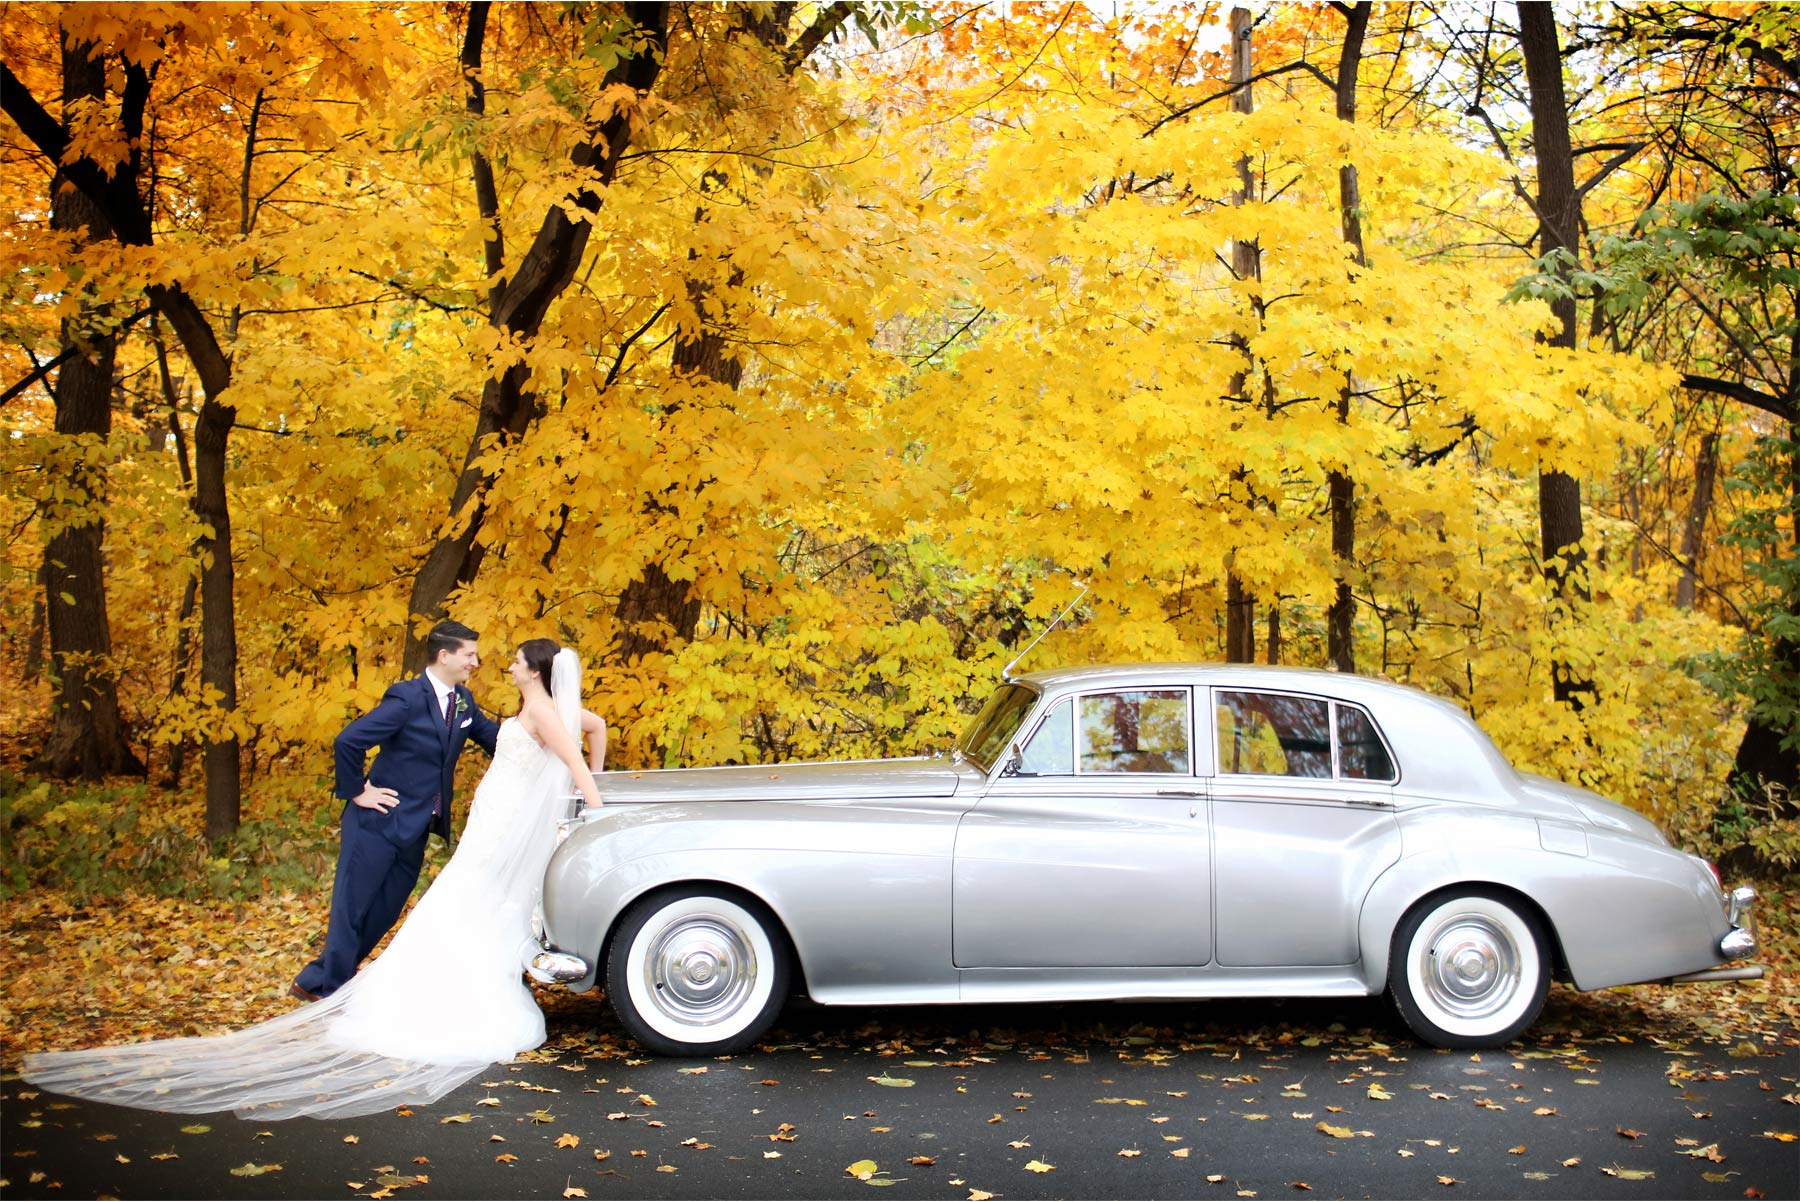 07-Minneapolis-Minnesota-Wedding-Photography-by-Vick-Photography-Classic-Car-Autumn-Fall-Colors-Bride-and-Groom-Jana-and-Matt.jpg